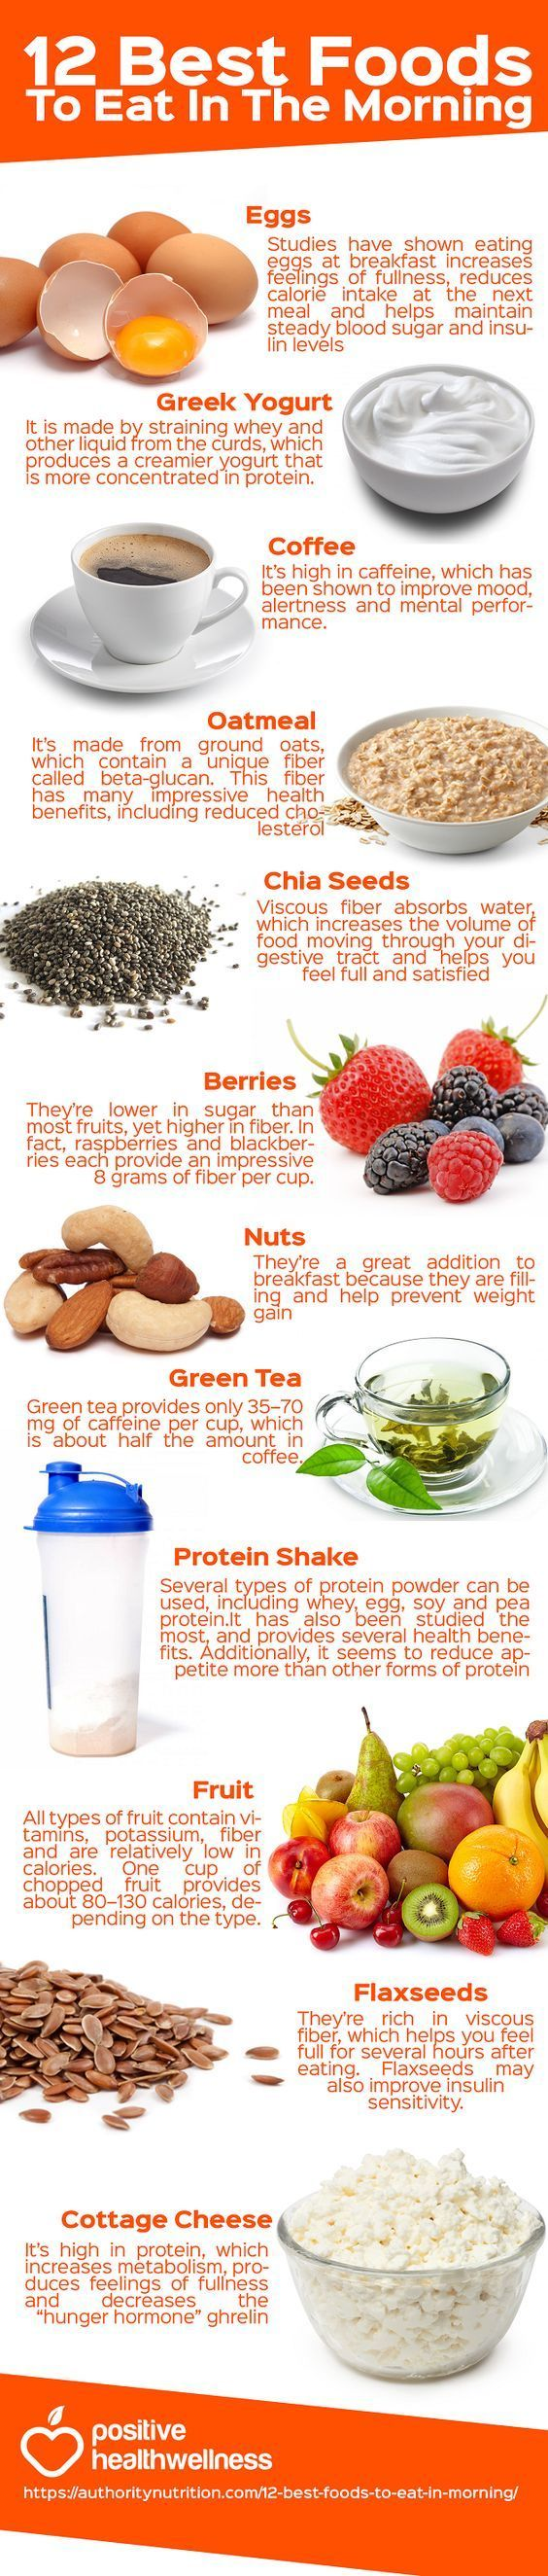 12 best foods to eat in the morning includes fruits, cottage cheese, flaxseeds, protein shake, nuts, berries, chia seeds, eggs, greek yogurt, and coffee. Take the free nutrition for weight loss course today! http://www.jorgewellness.com/start-free-course